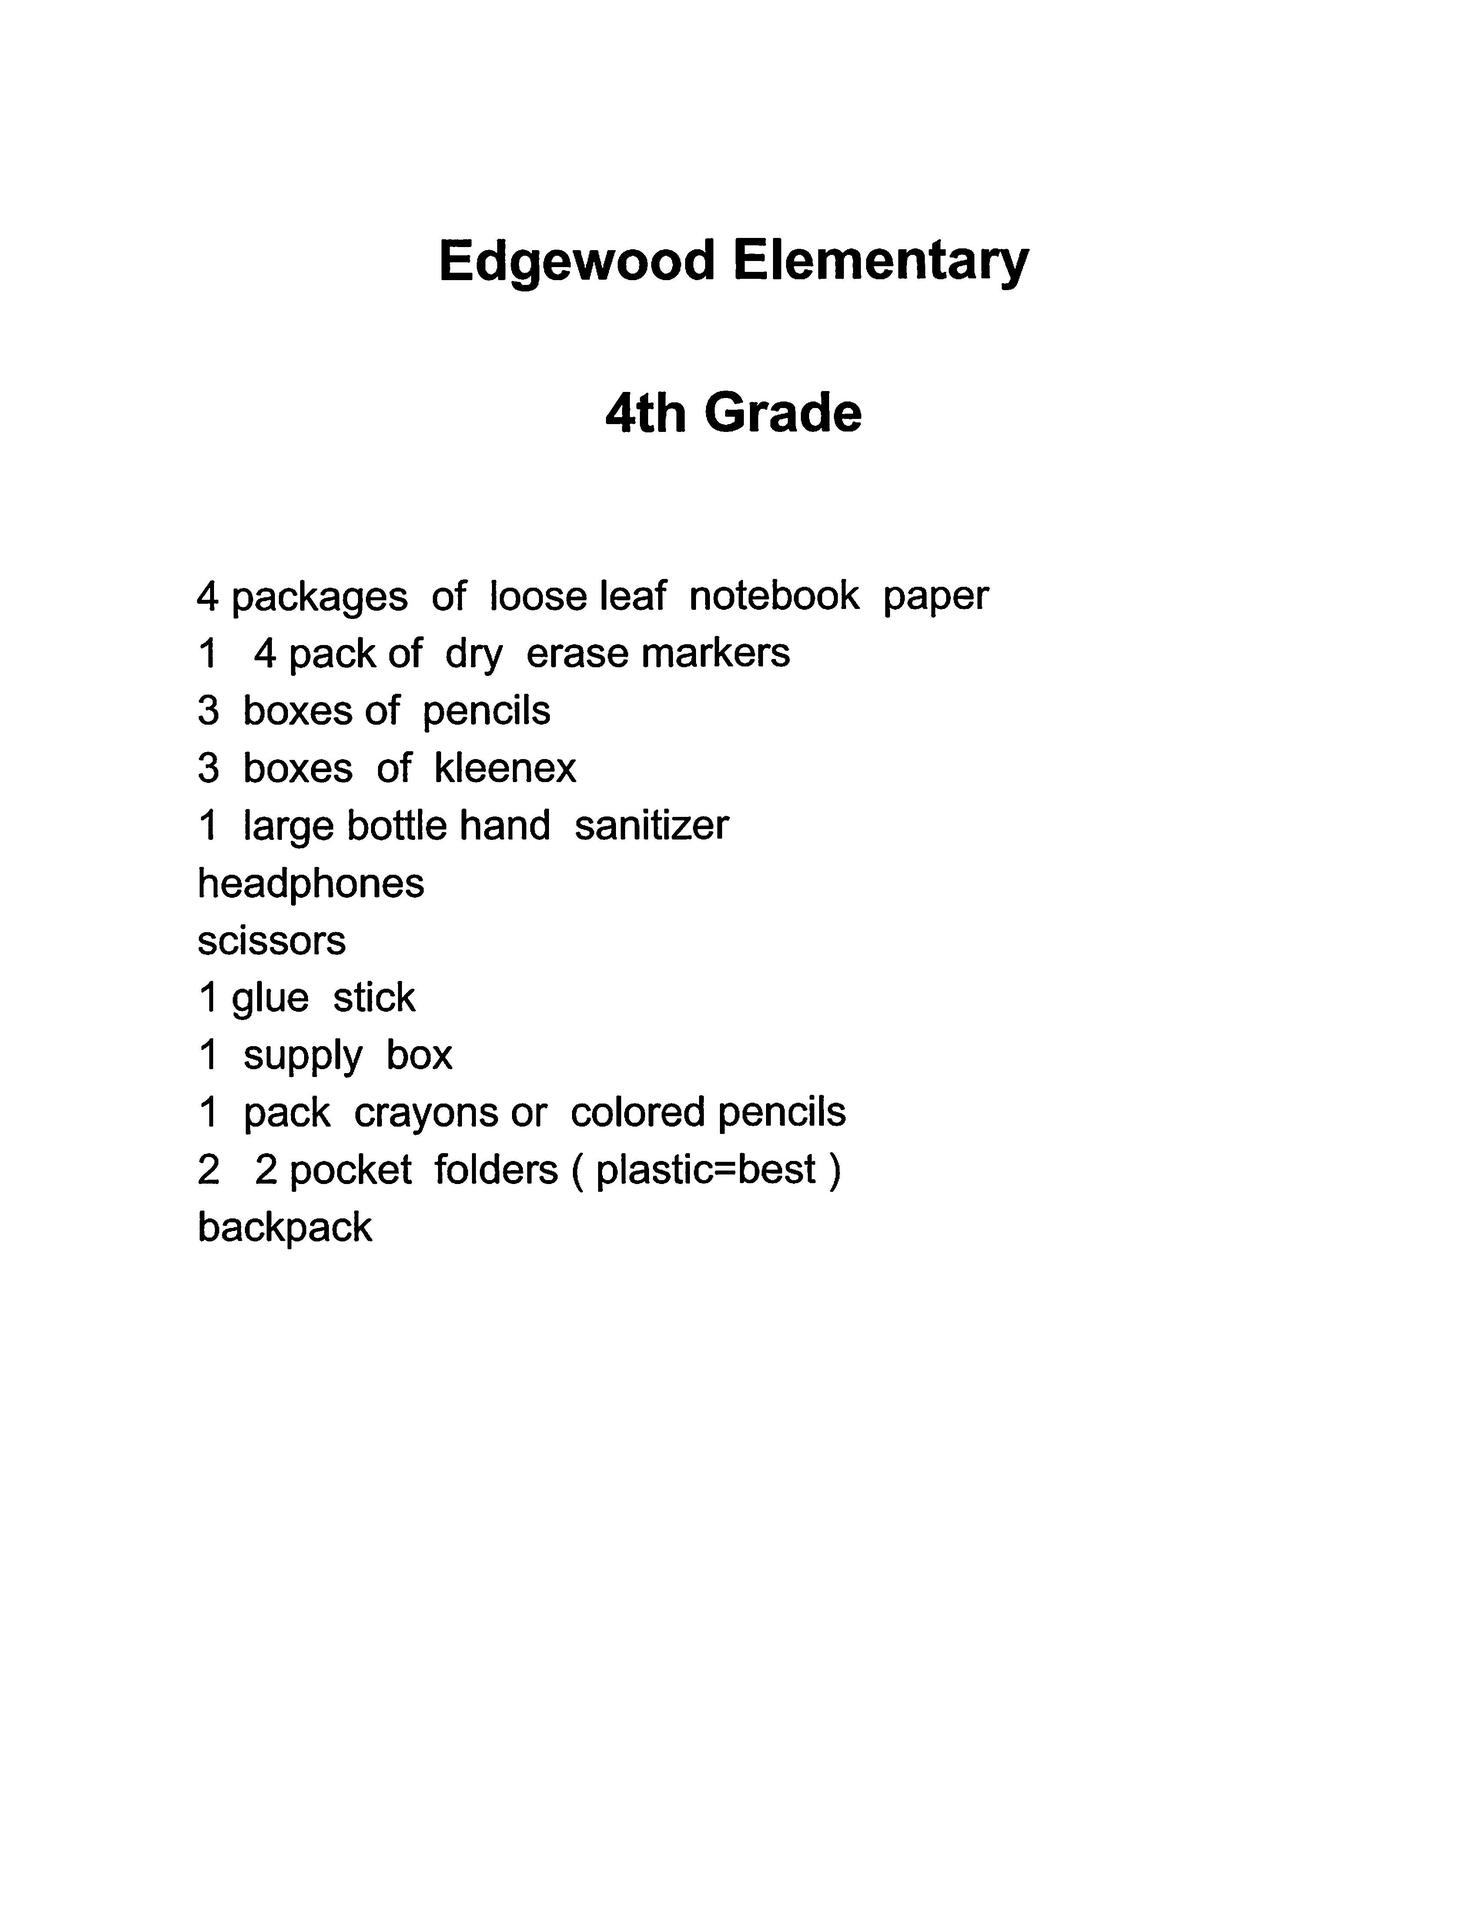 Edgewood 4th grade supply list 2019-2020